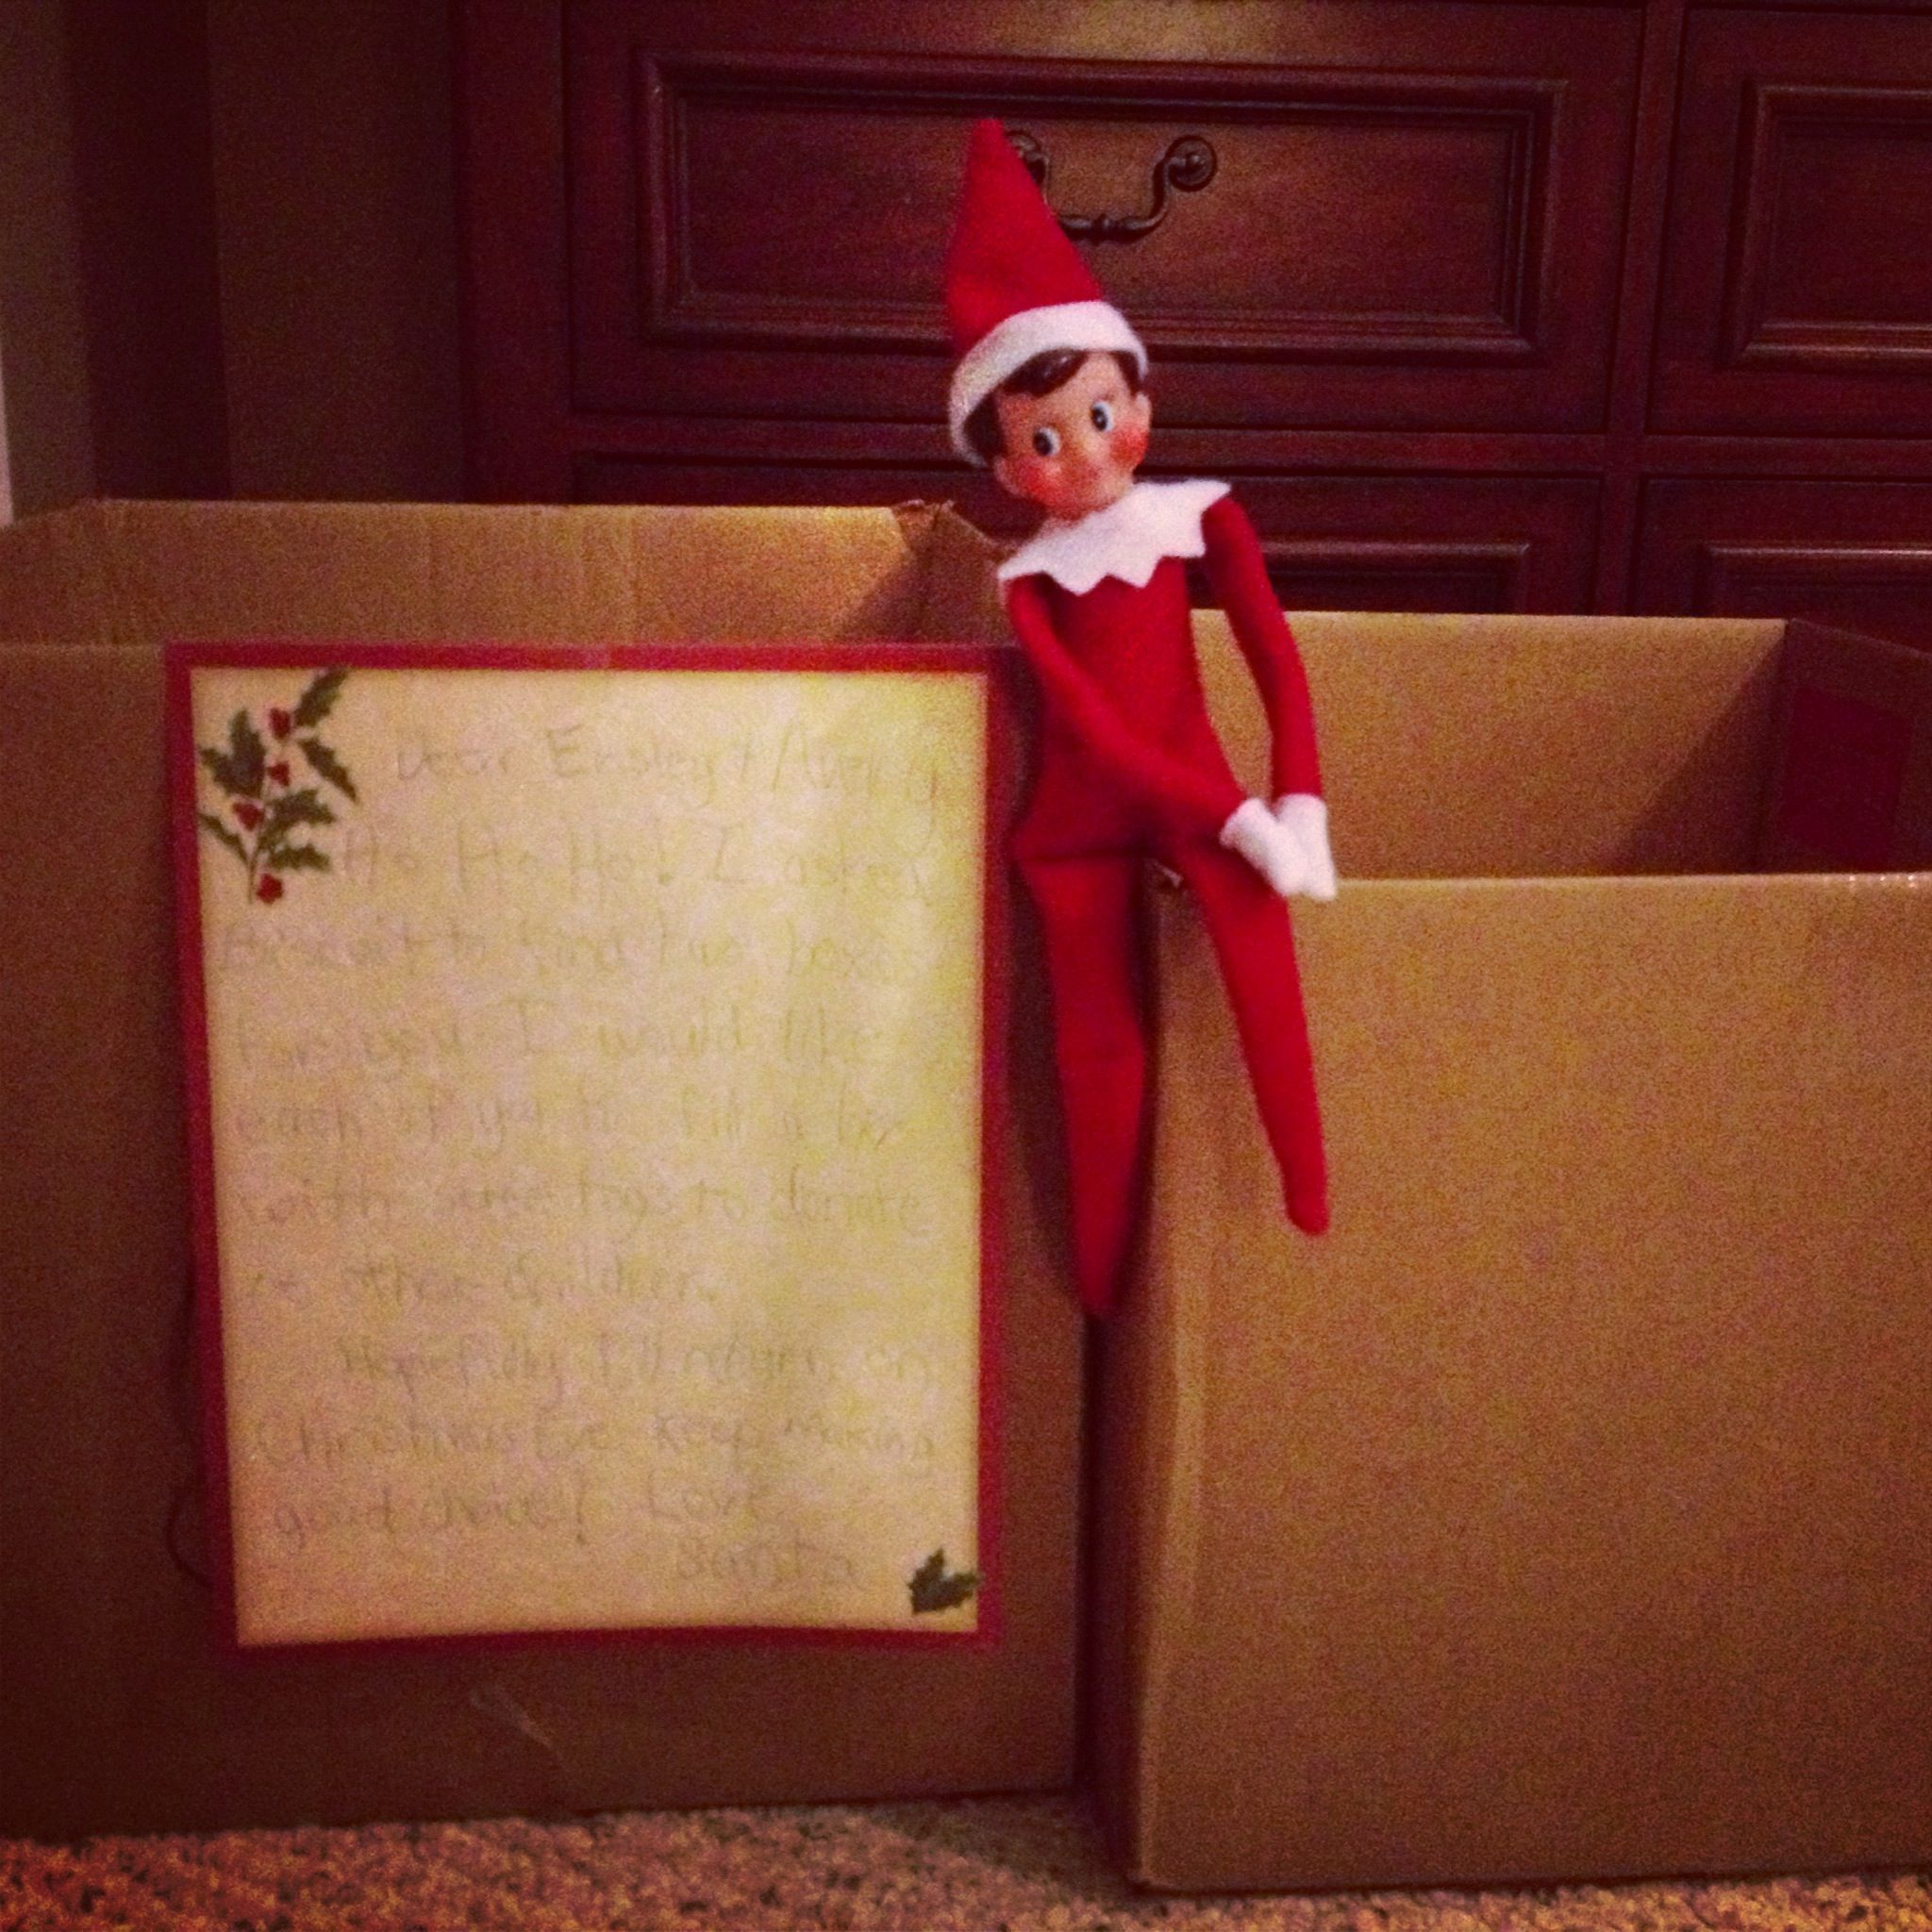 How To Get Elf On The Shelf Out Of Box